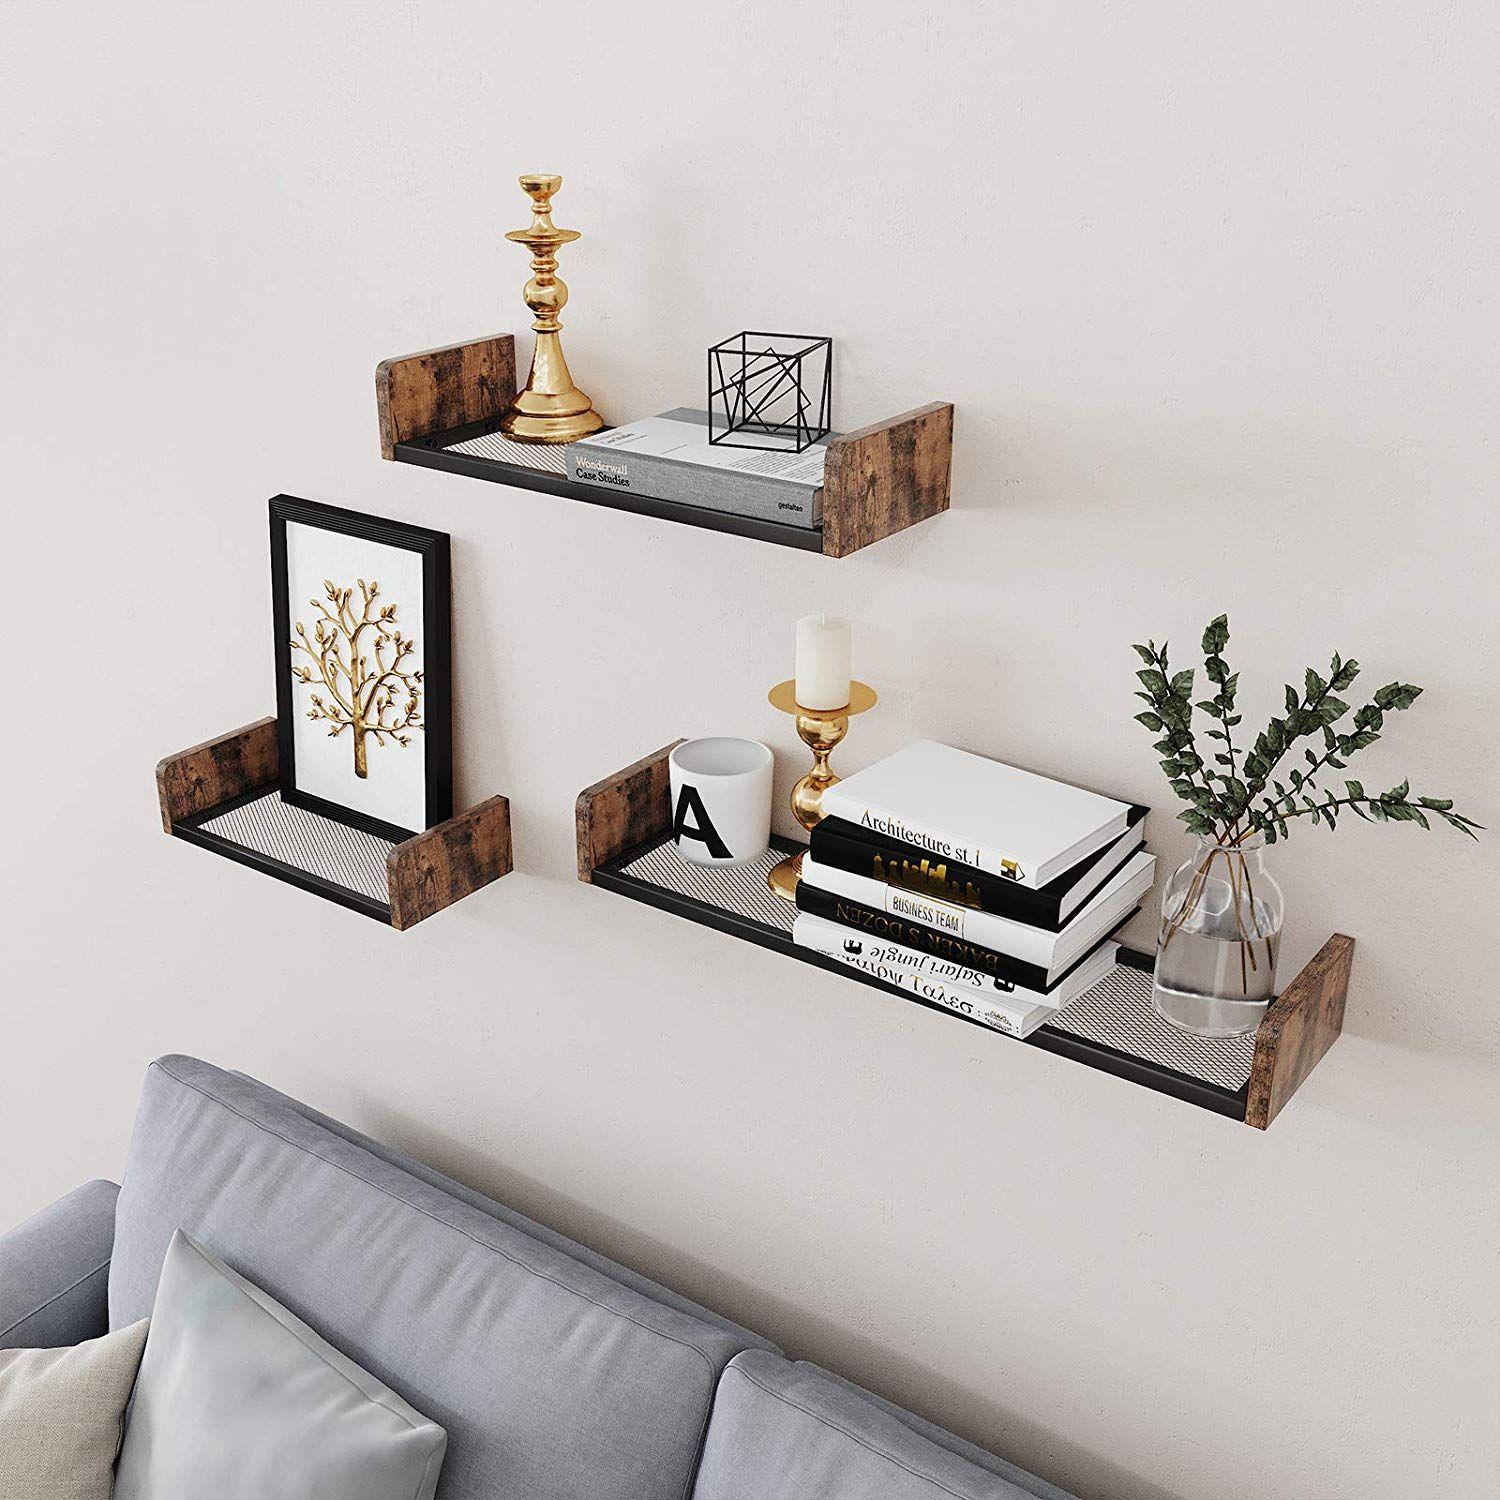 A Delicate Design To Decorate Your Space Shelf Decor Bed